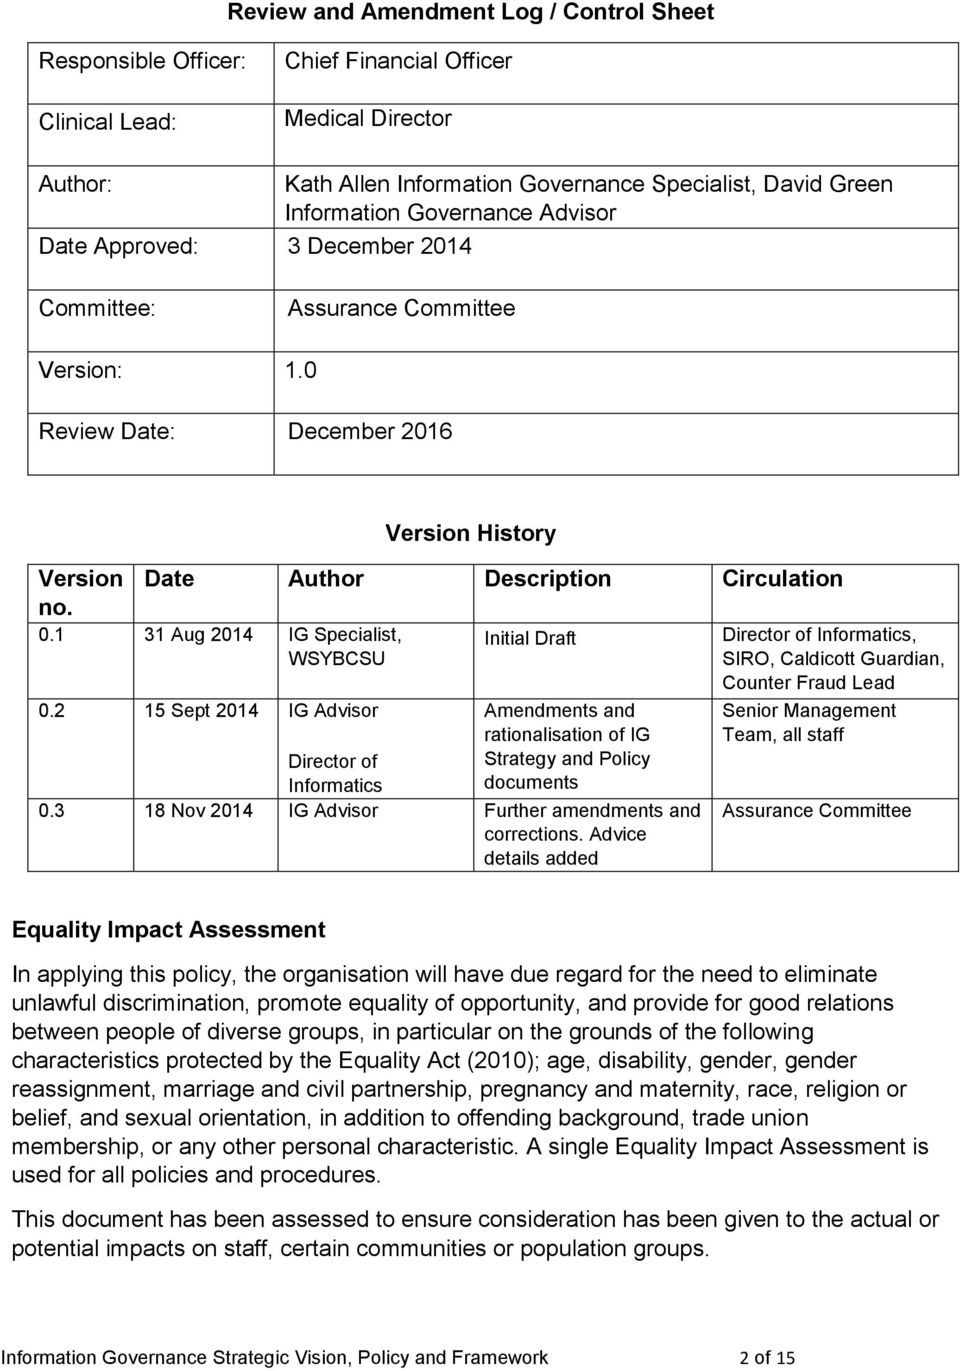 1 31 Aug 2014 IG Specialist, WSYBCSU Initial Draft 0.2 15 Sept 2014 IG Advisor Director of Informatics Amendments and rationalisation of IG Strategy and Policy documents 0.